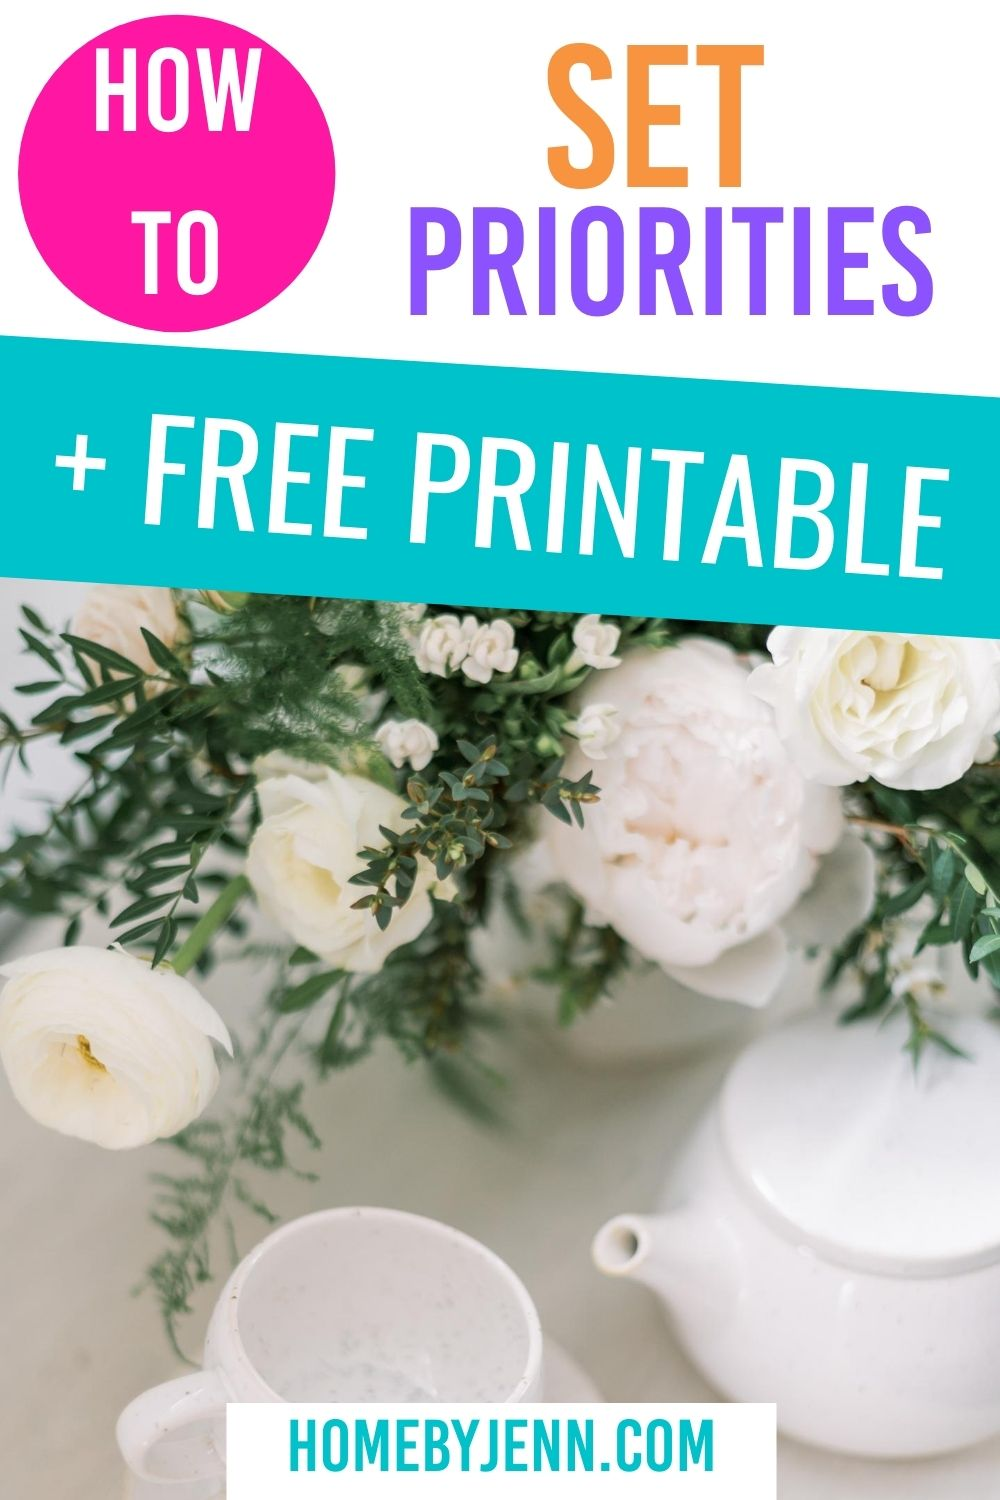 Set priorities so you know what to focus on in the limited amount of time you do have. This will help you save time and become more efficient. #timemanagement #timesaving #timesavingtips #timemanagementtips #setpriorities #wheretostart via @homebyjenn